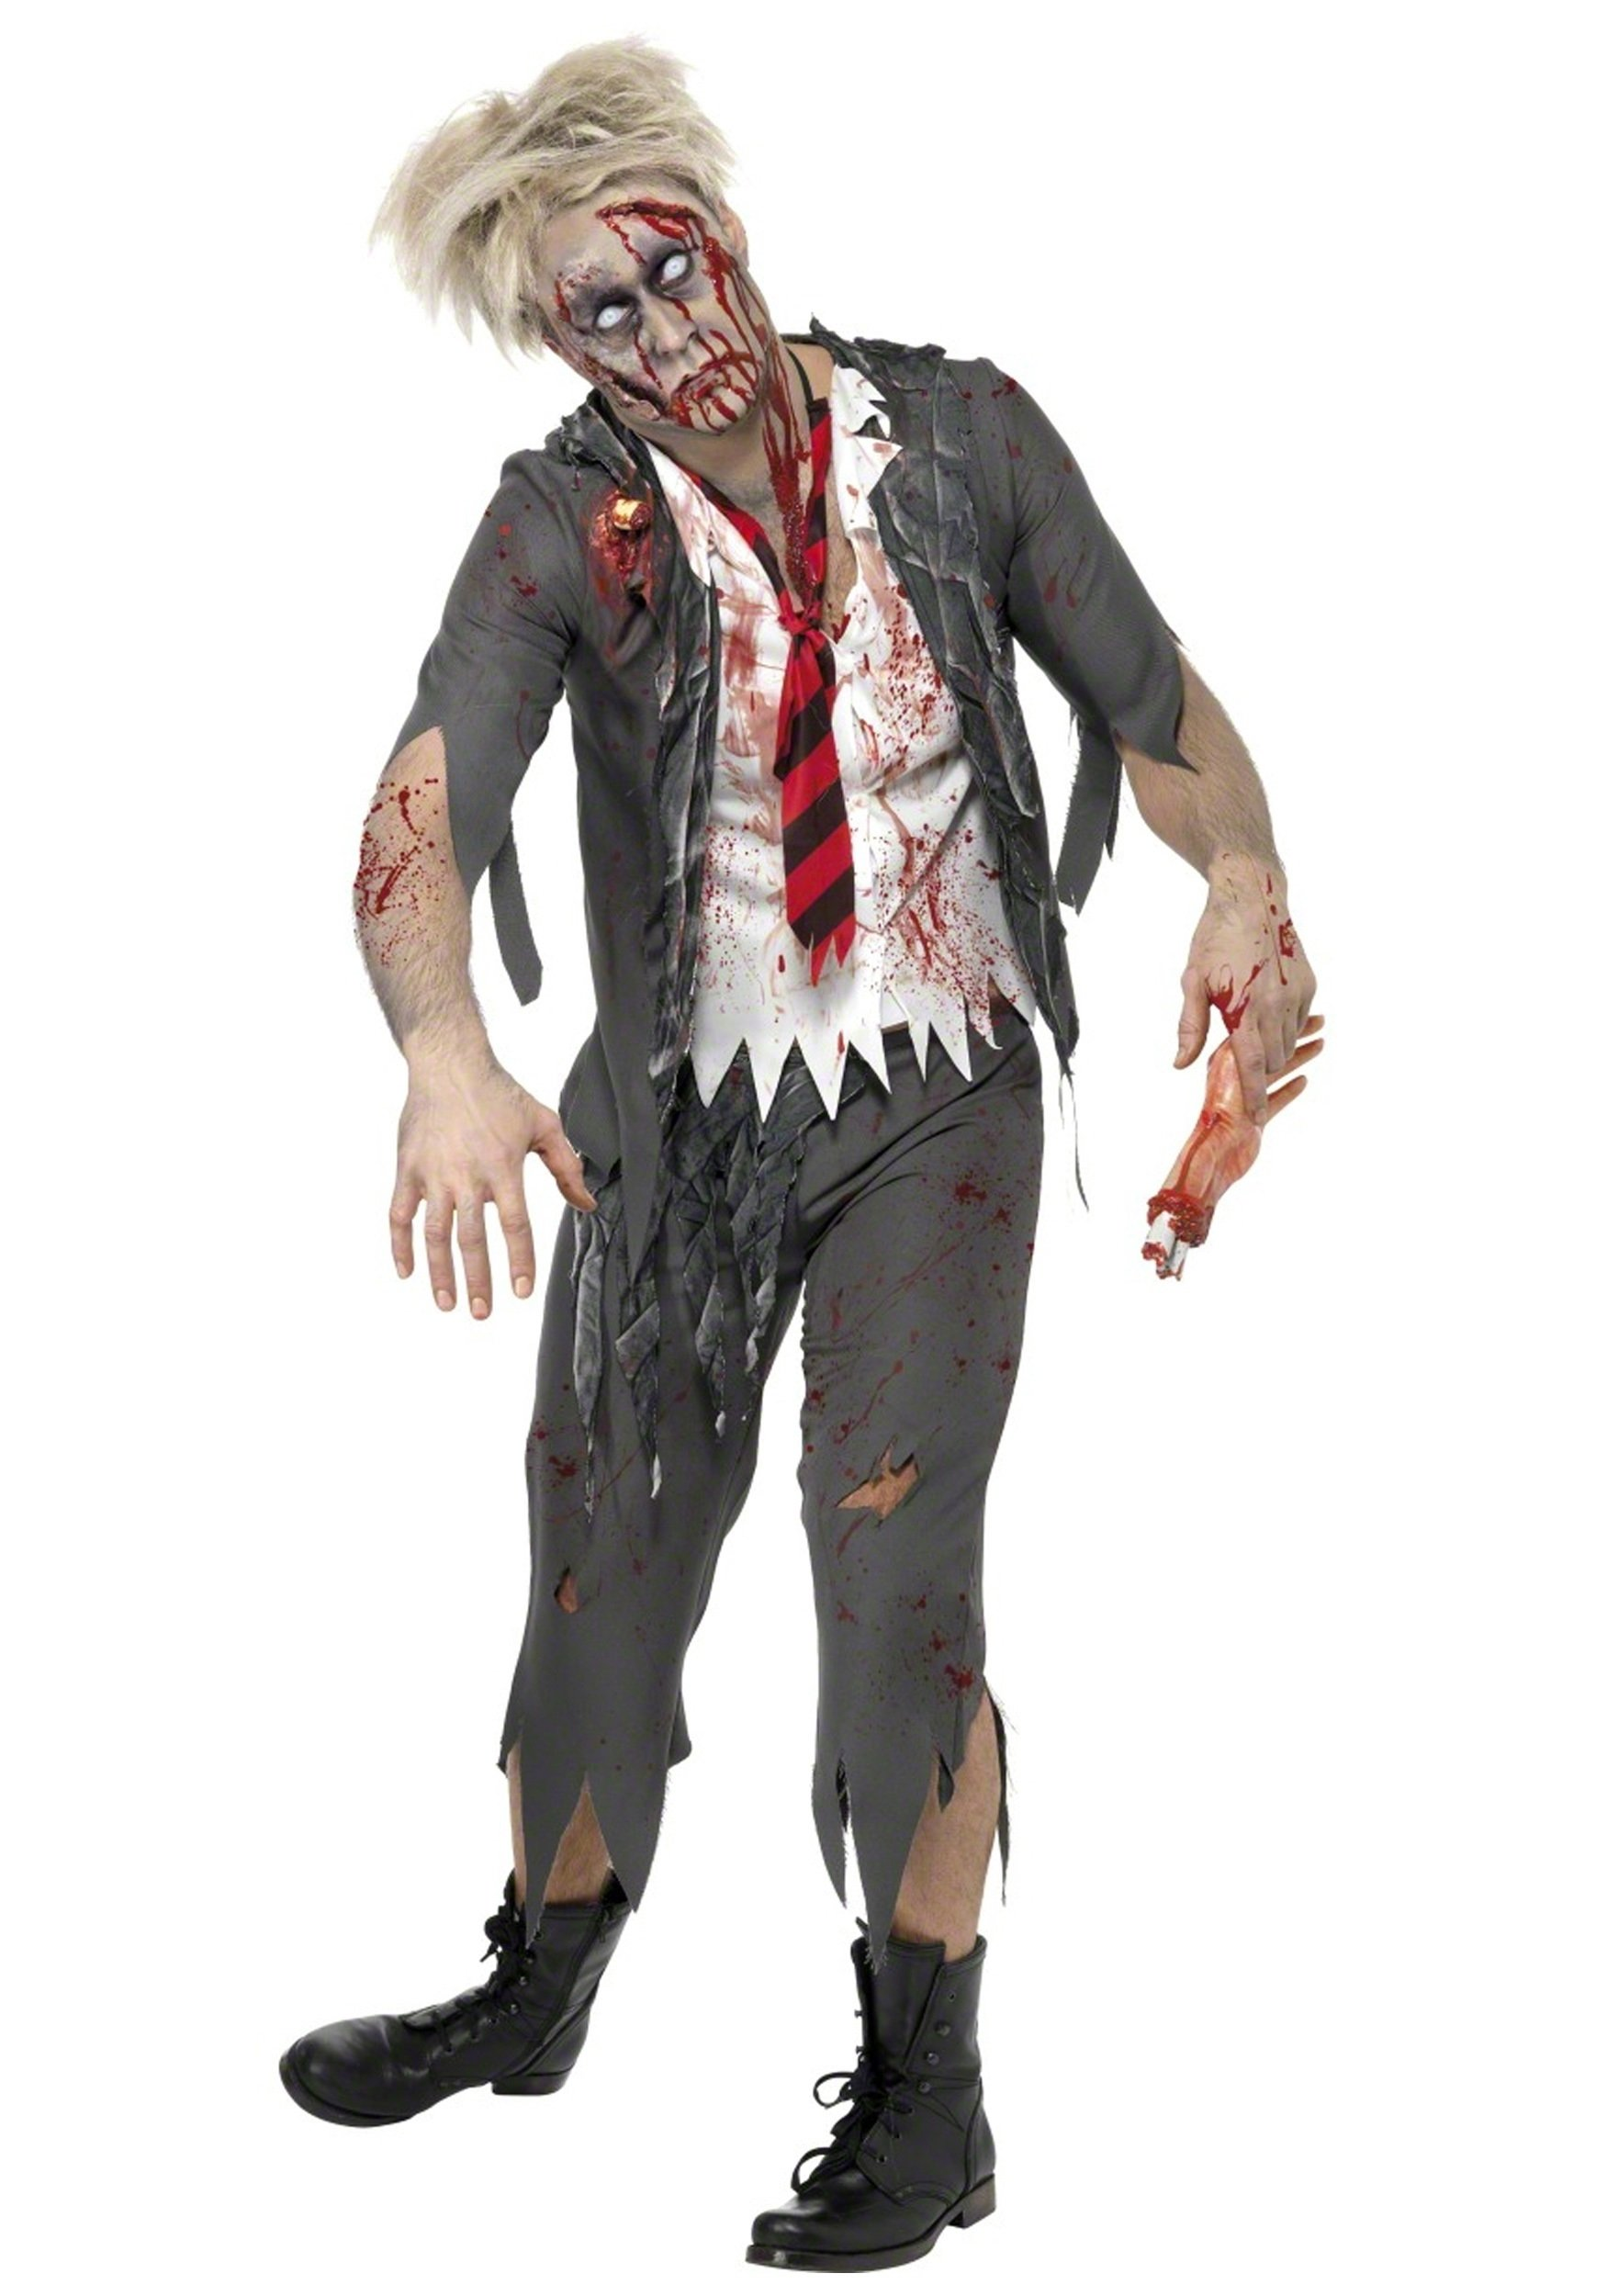 10 Fashionable Zombie Costume Ideas For Men zombie school boy costume 2020